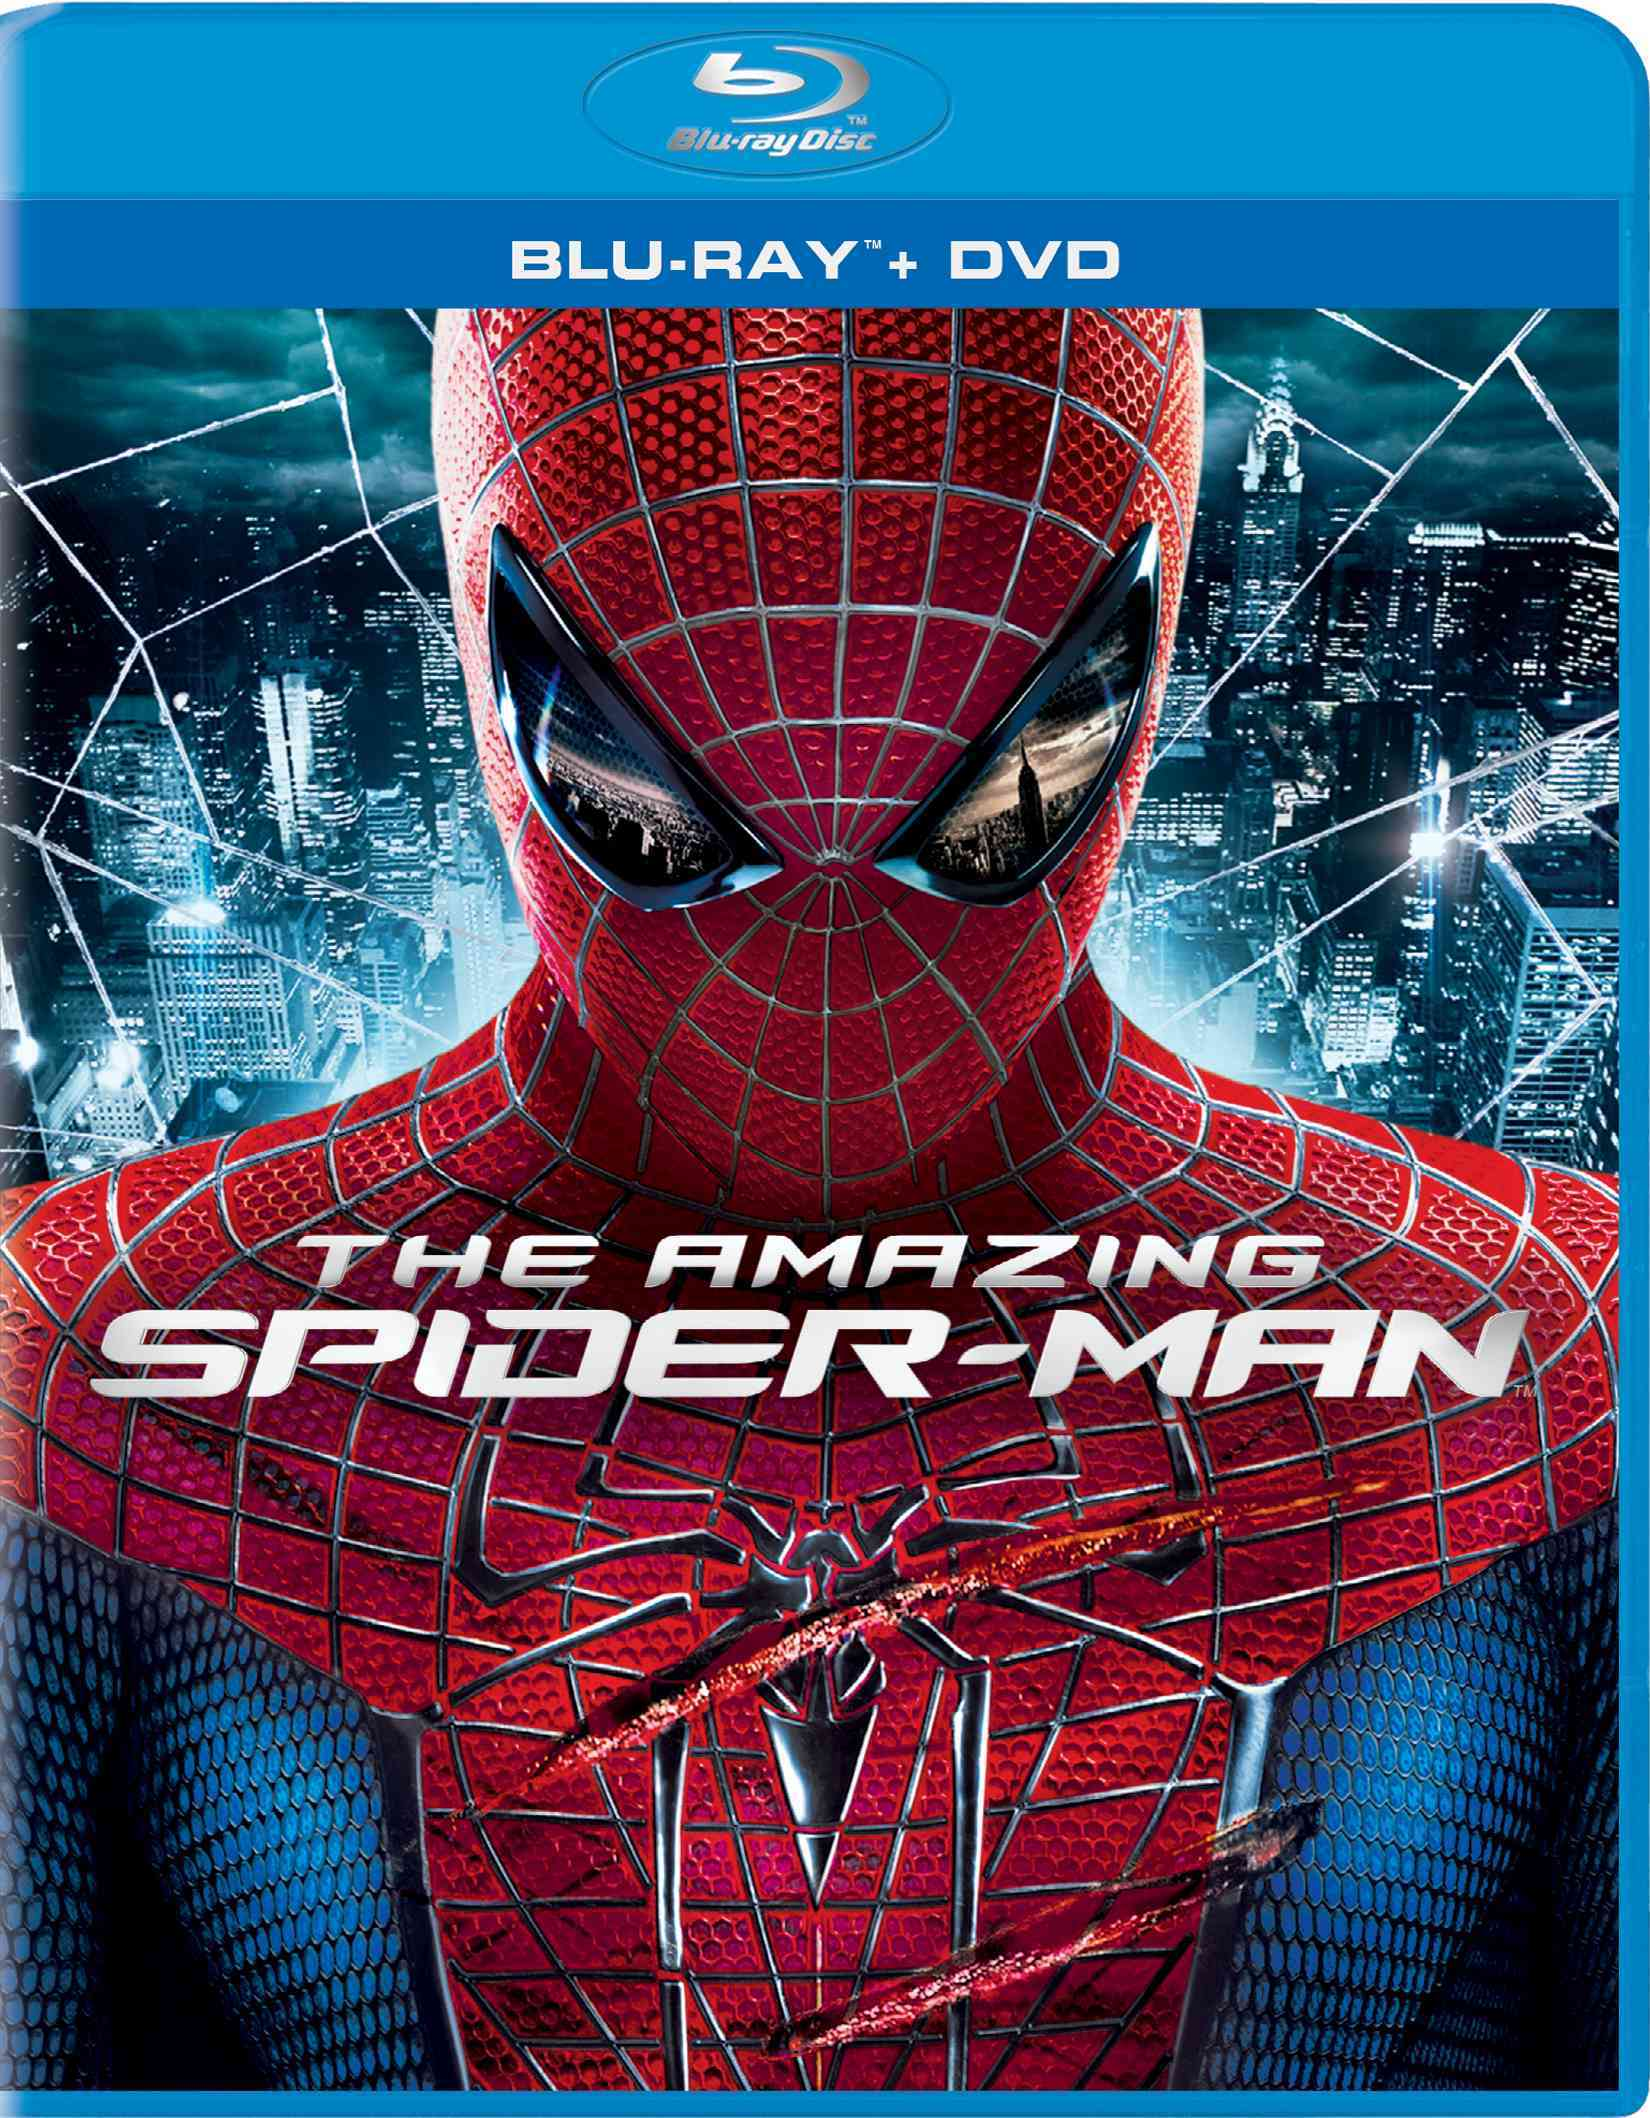 AMAZING SPIDER-MAN BY GARFIELD,ANDREW (Blu-Ray)